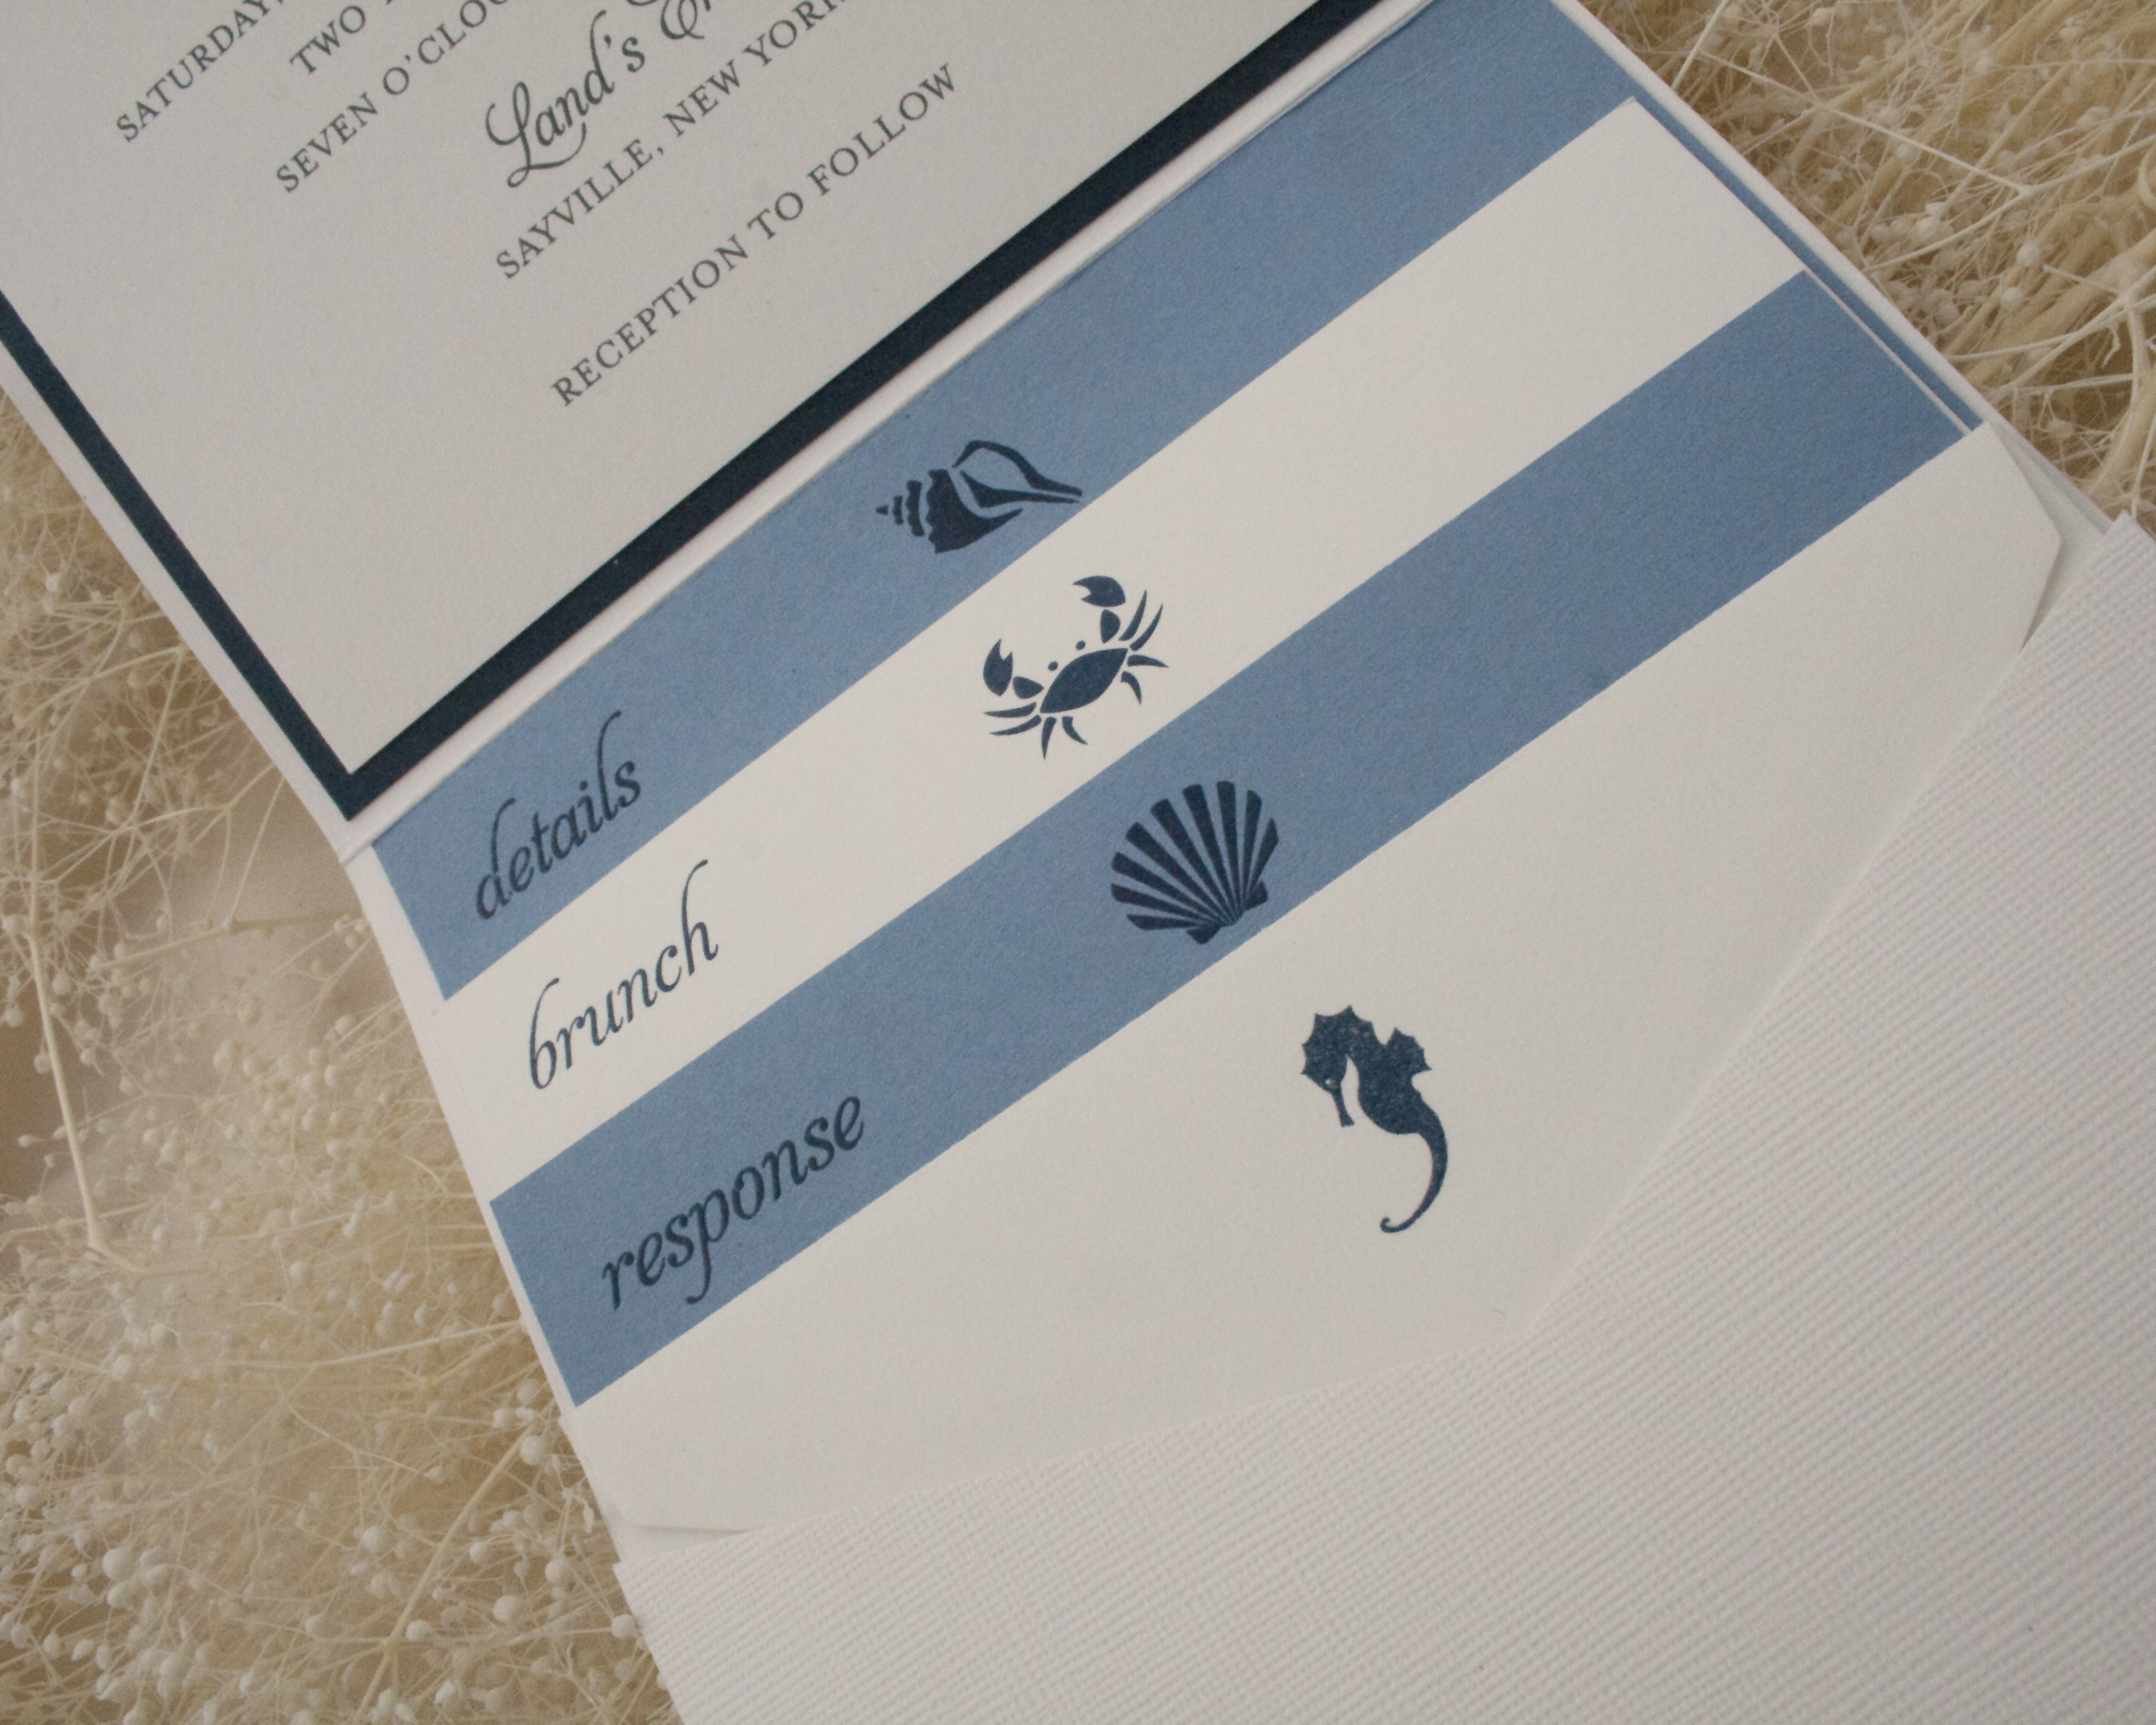 Catie + Ryan, Nautical pocket invitation, blue and navy color palette, monogram and beach motifs